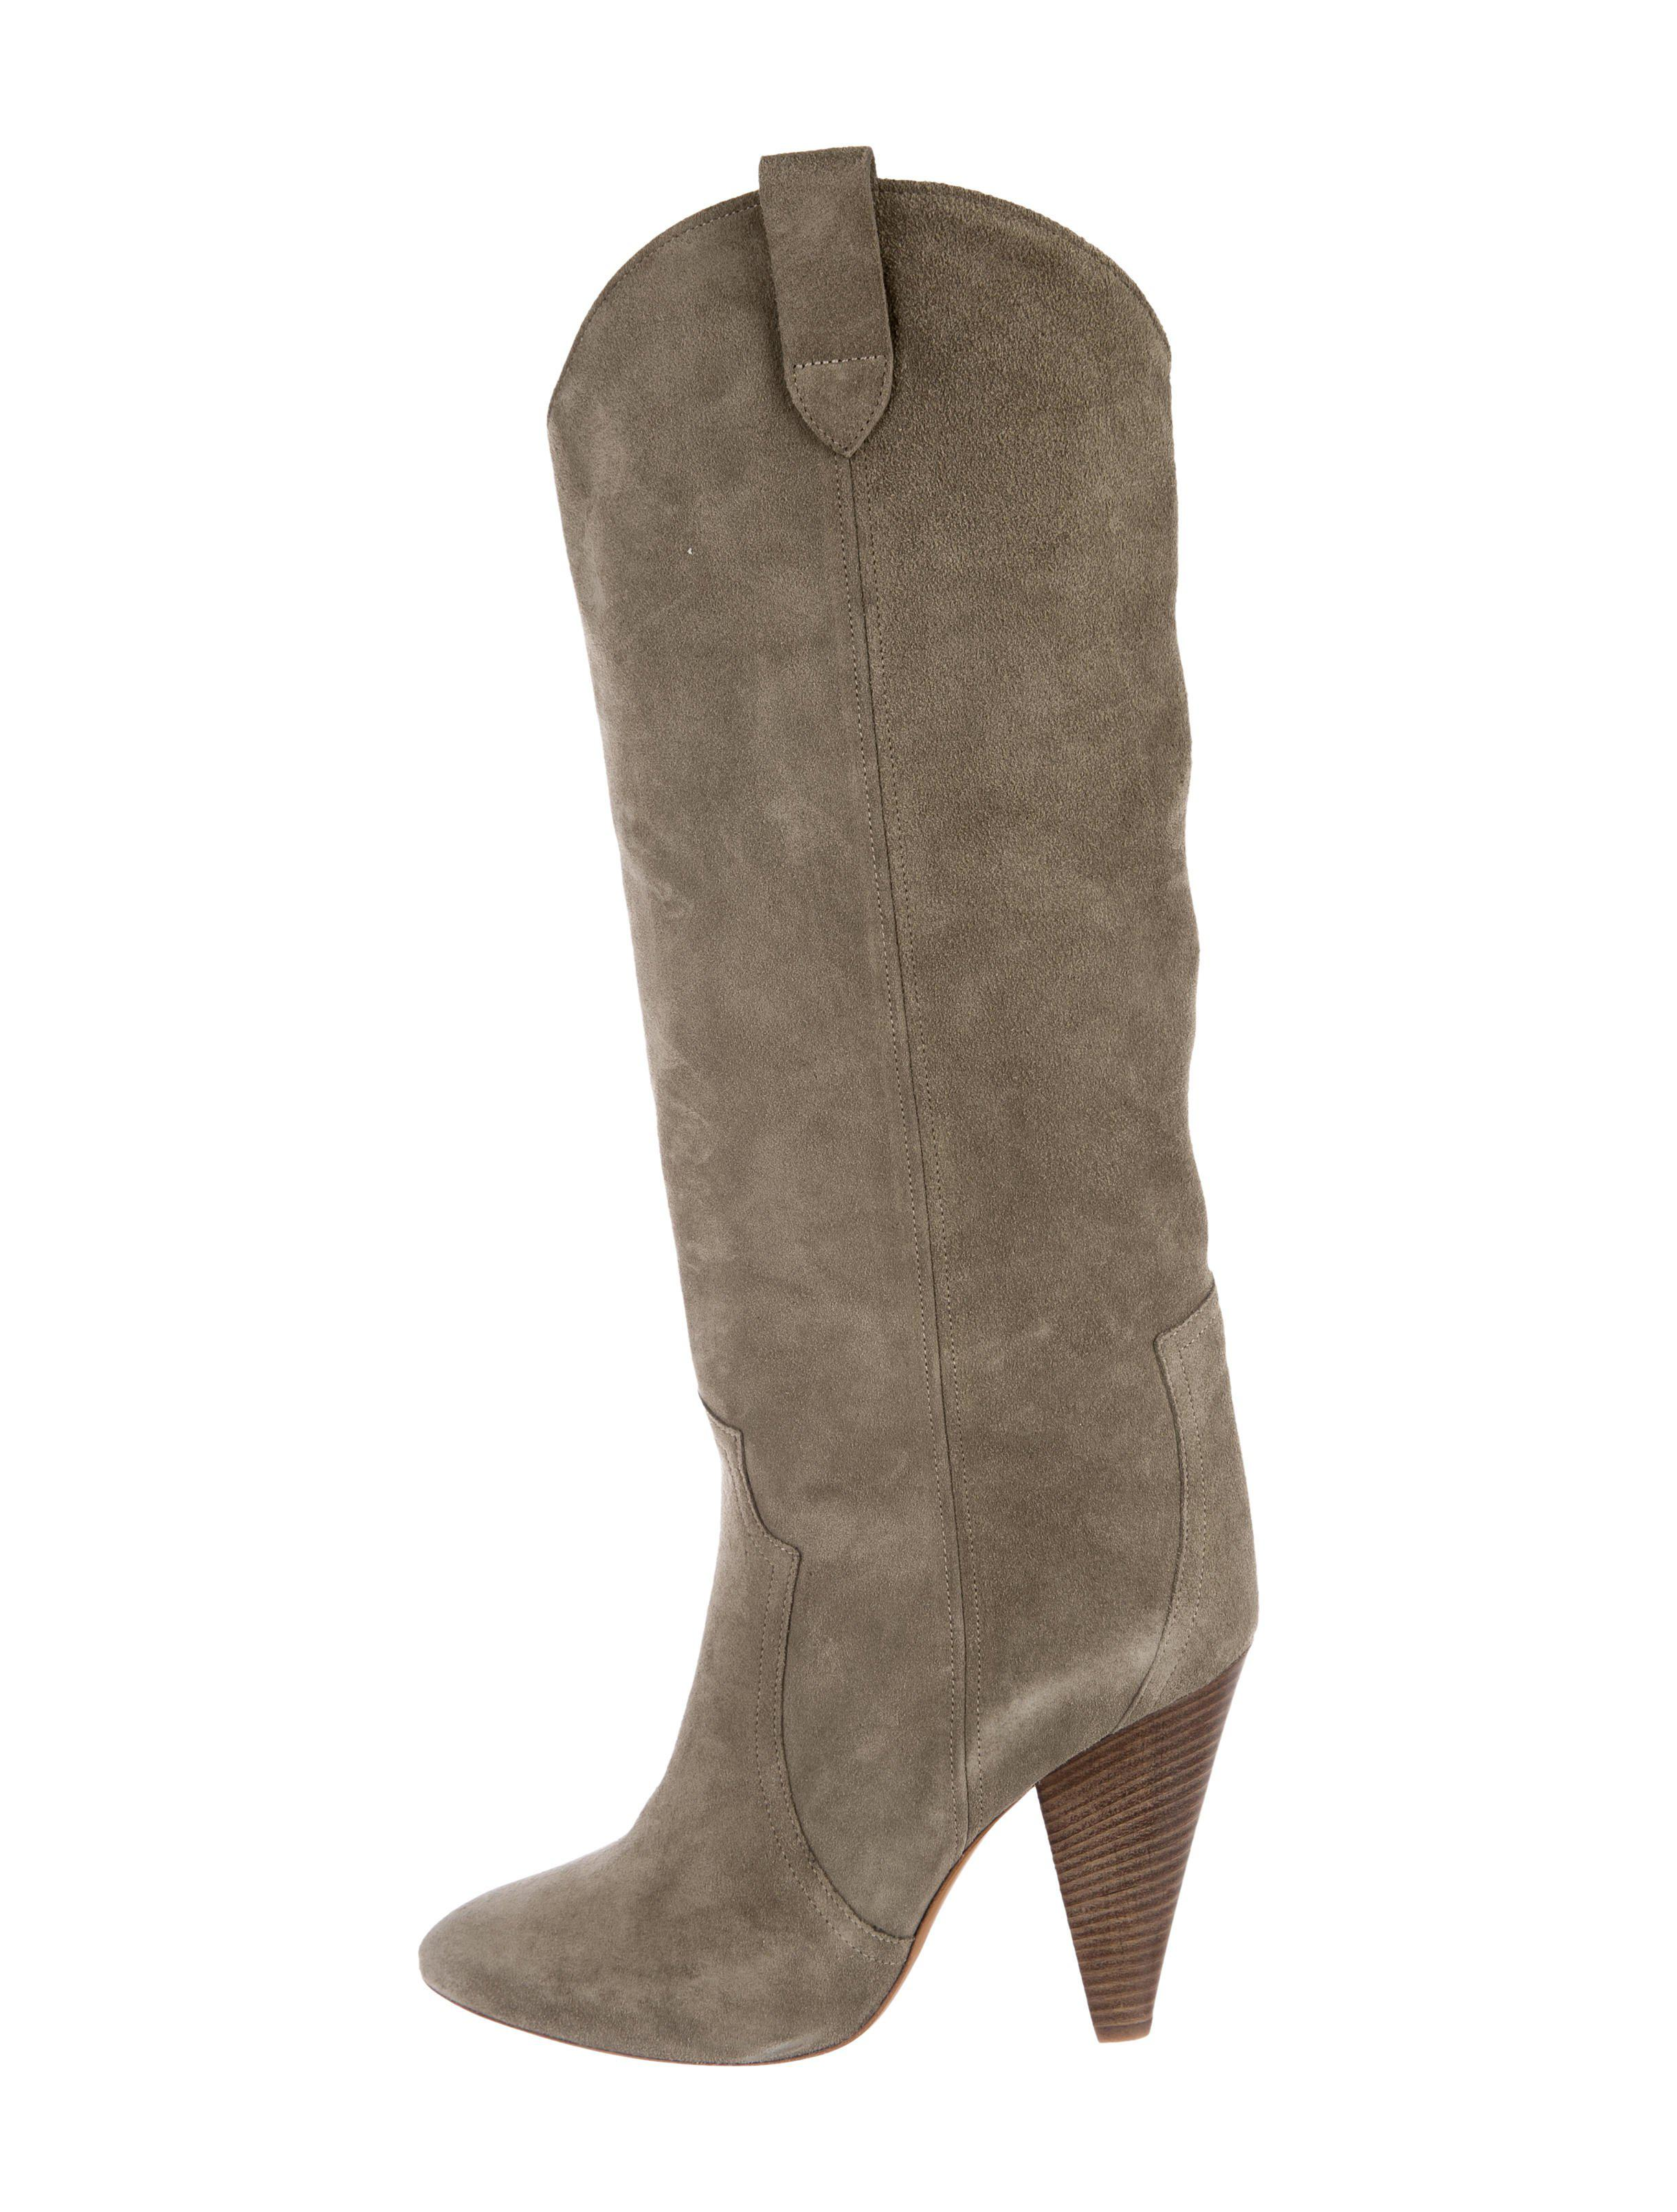 free shipping countdown package Isabel Marant Suede Round-Toe Mid-Calf Boots fashionable sale online discount cheap online outlet free shipping authentic clearance deals R9QwUgd95f